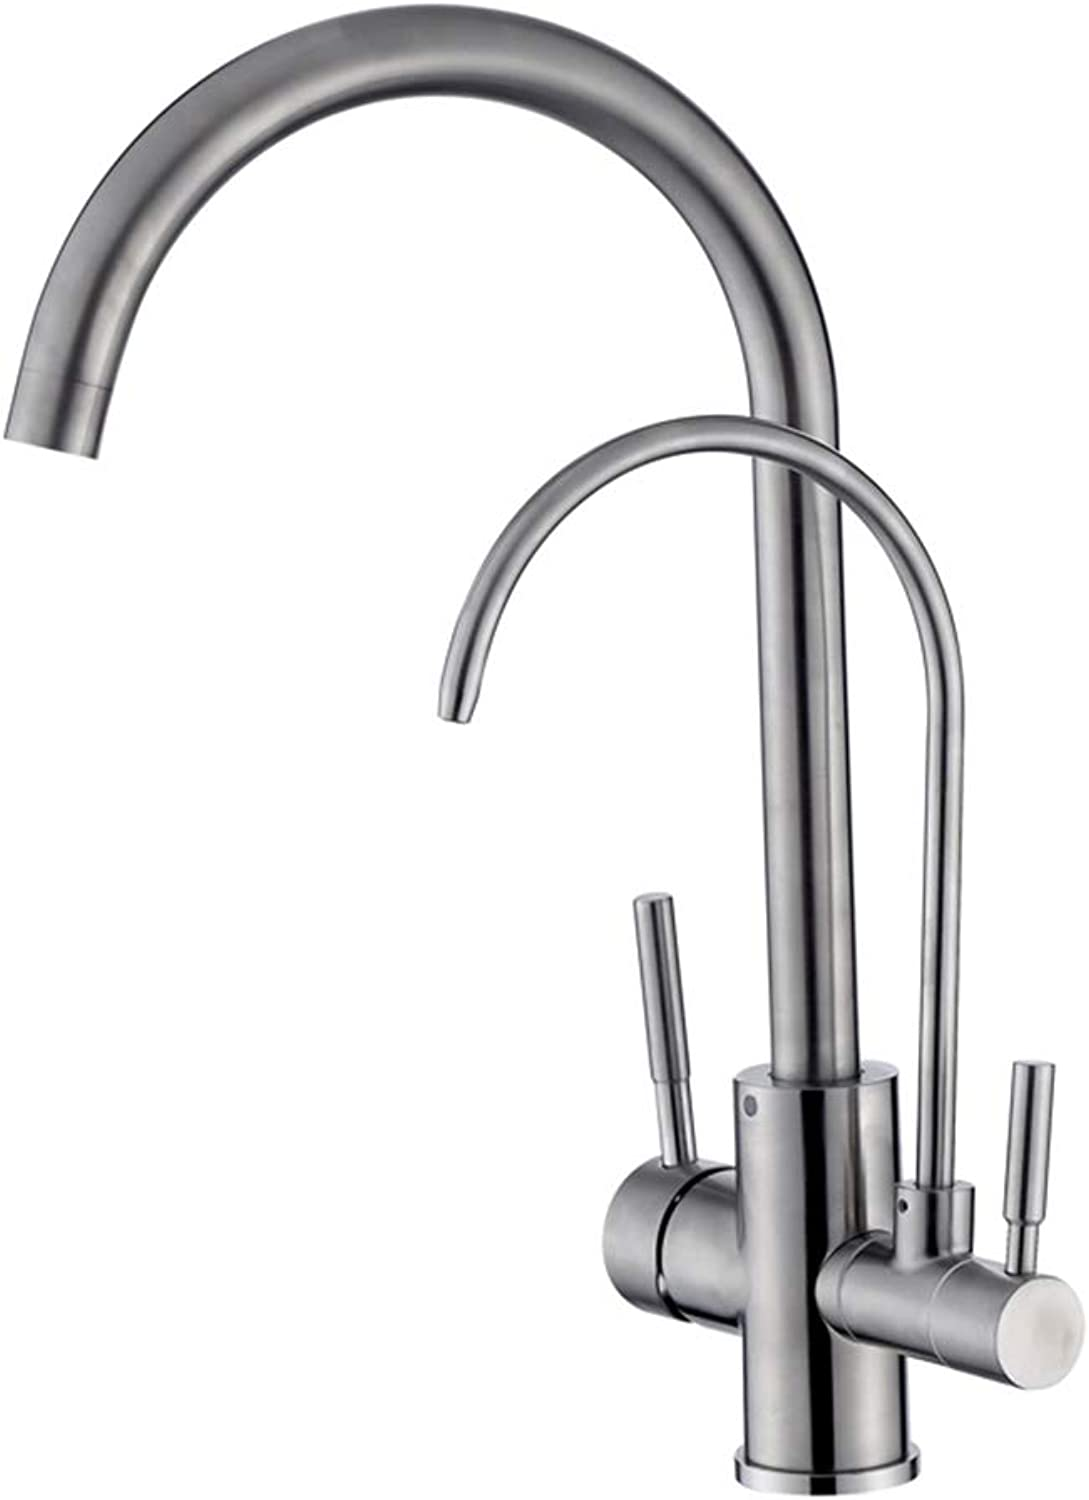 Multifunctional Sus304 Stainless Steel Kitchen Straight Drinking Pure Water Cold Water Faucet, Dual-Use Two In One